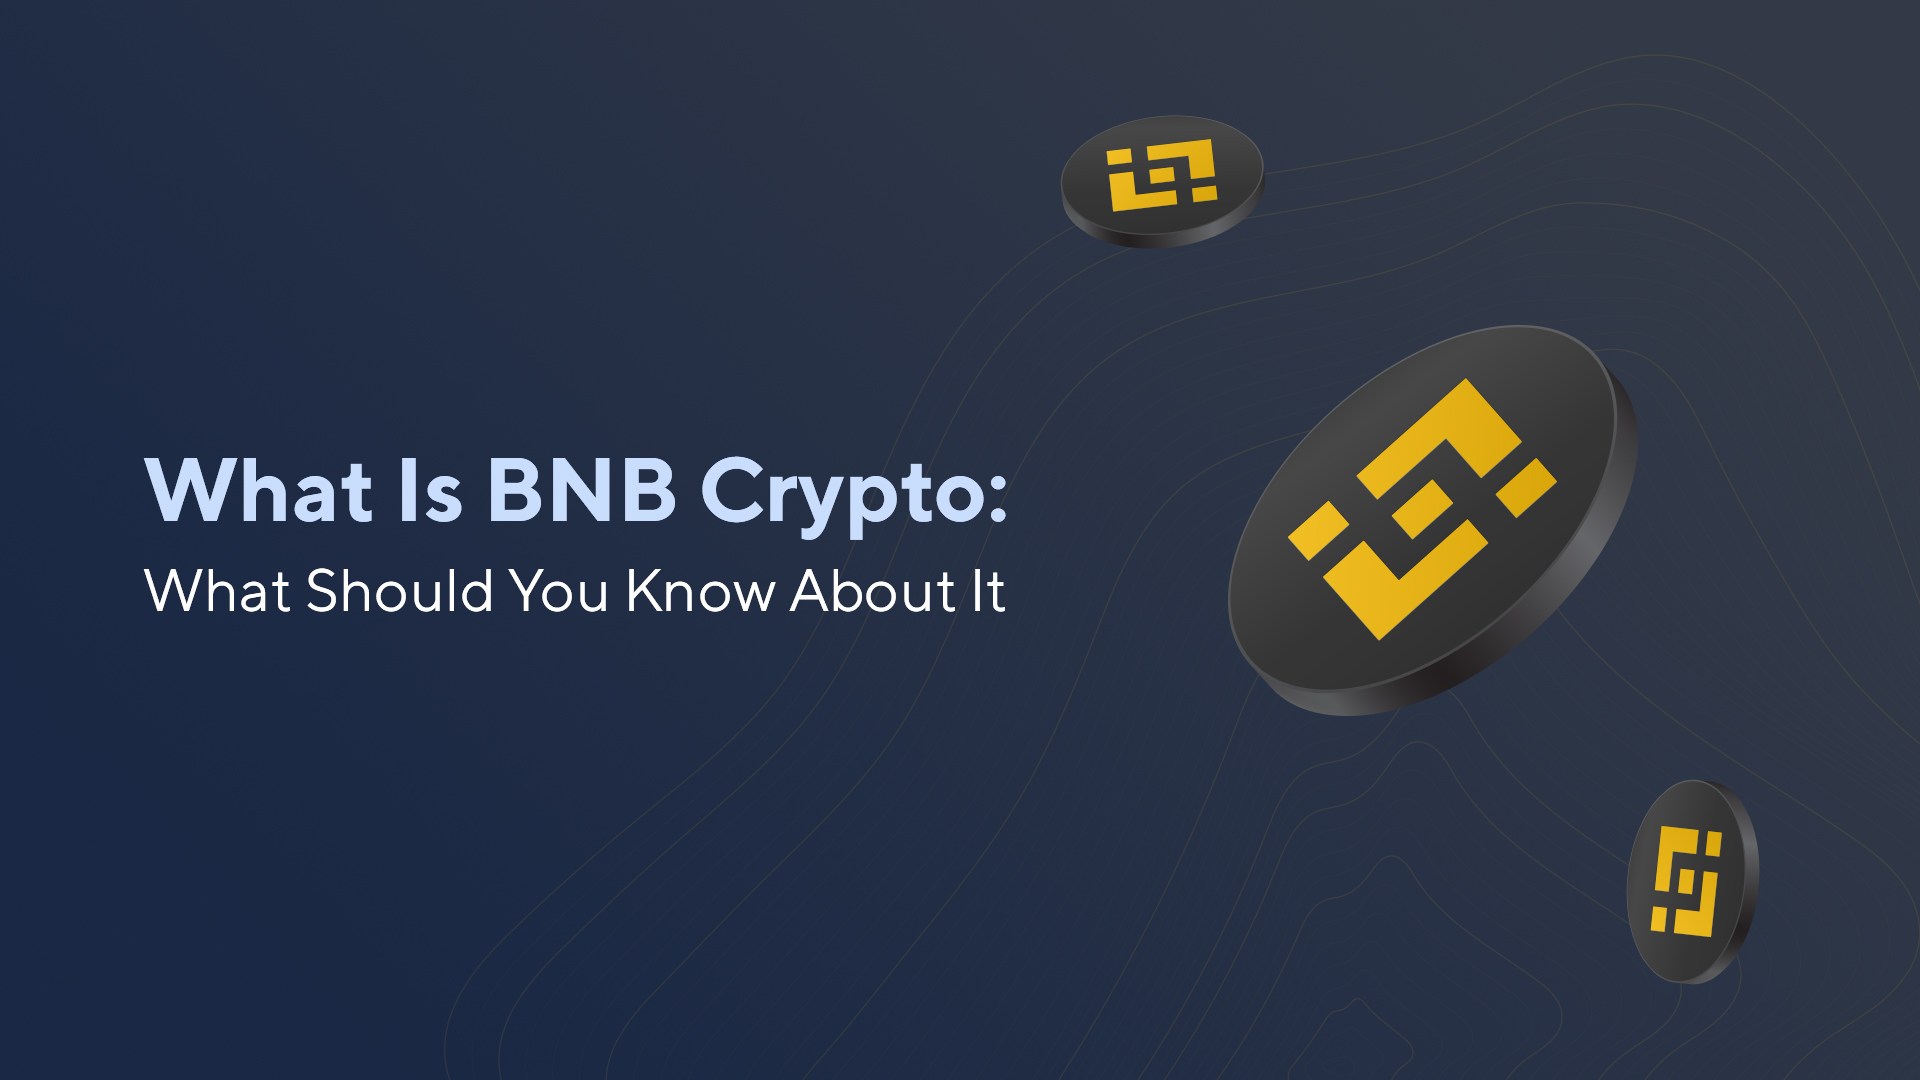 What Is BNB Crypto: What Should You Know About It